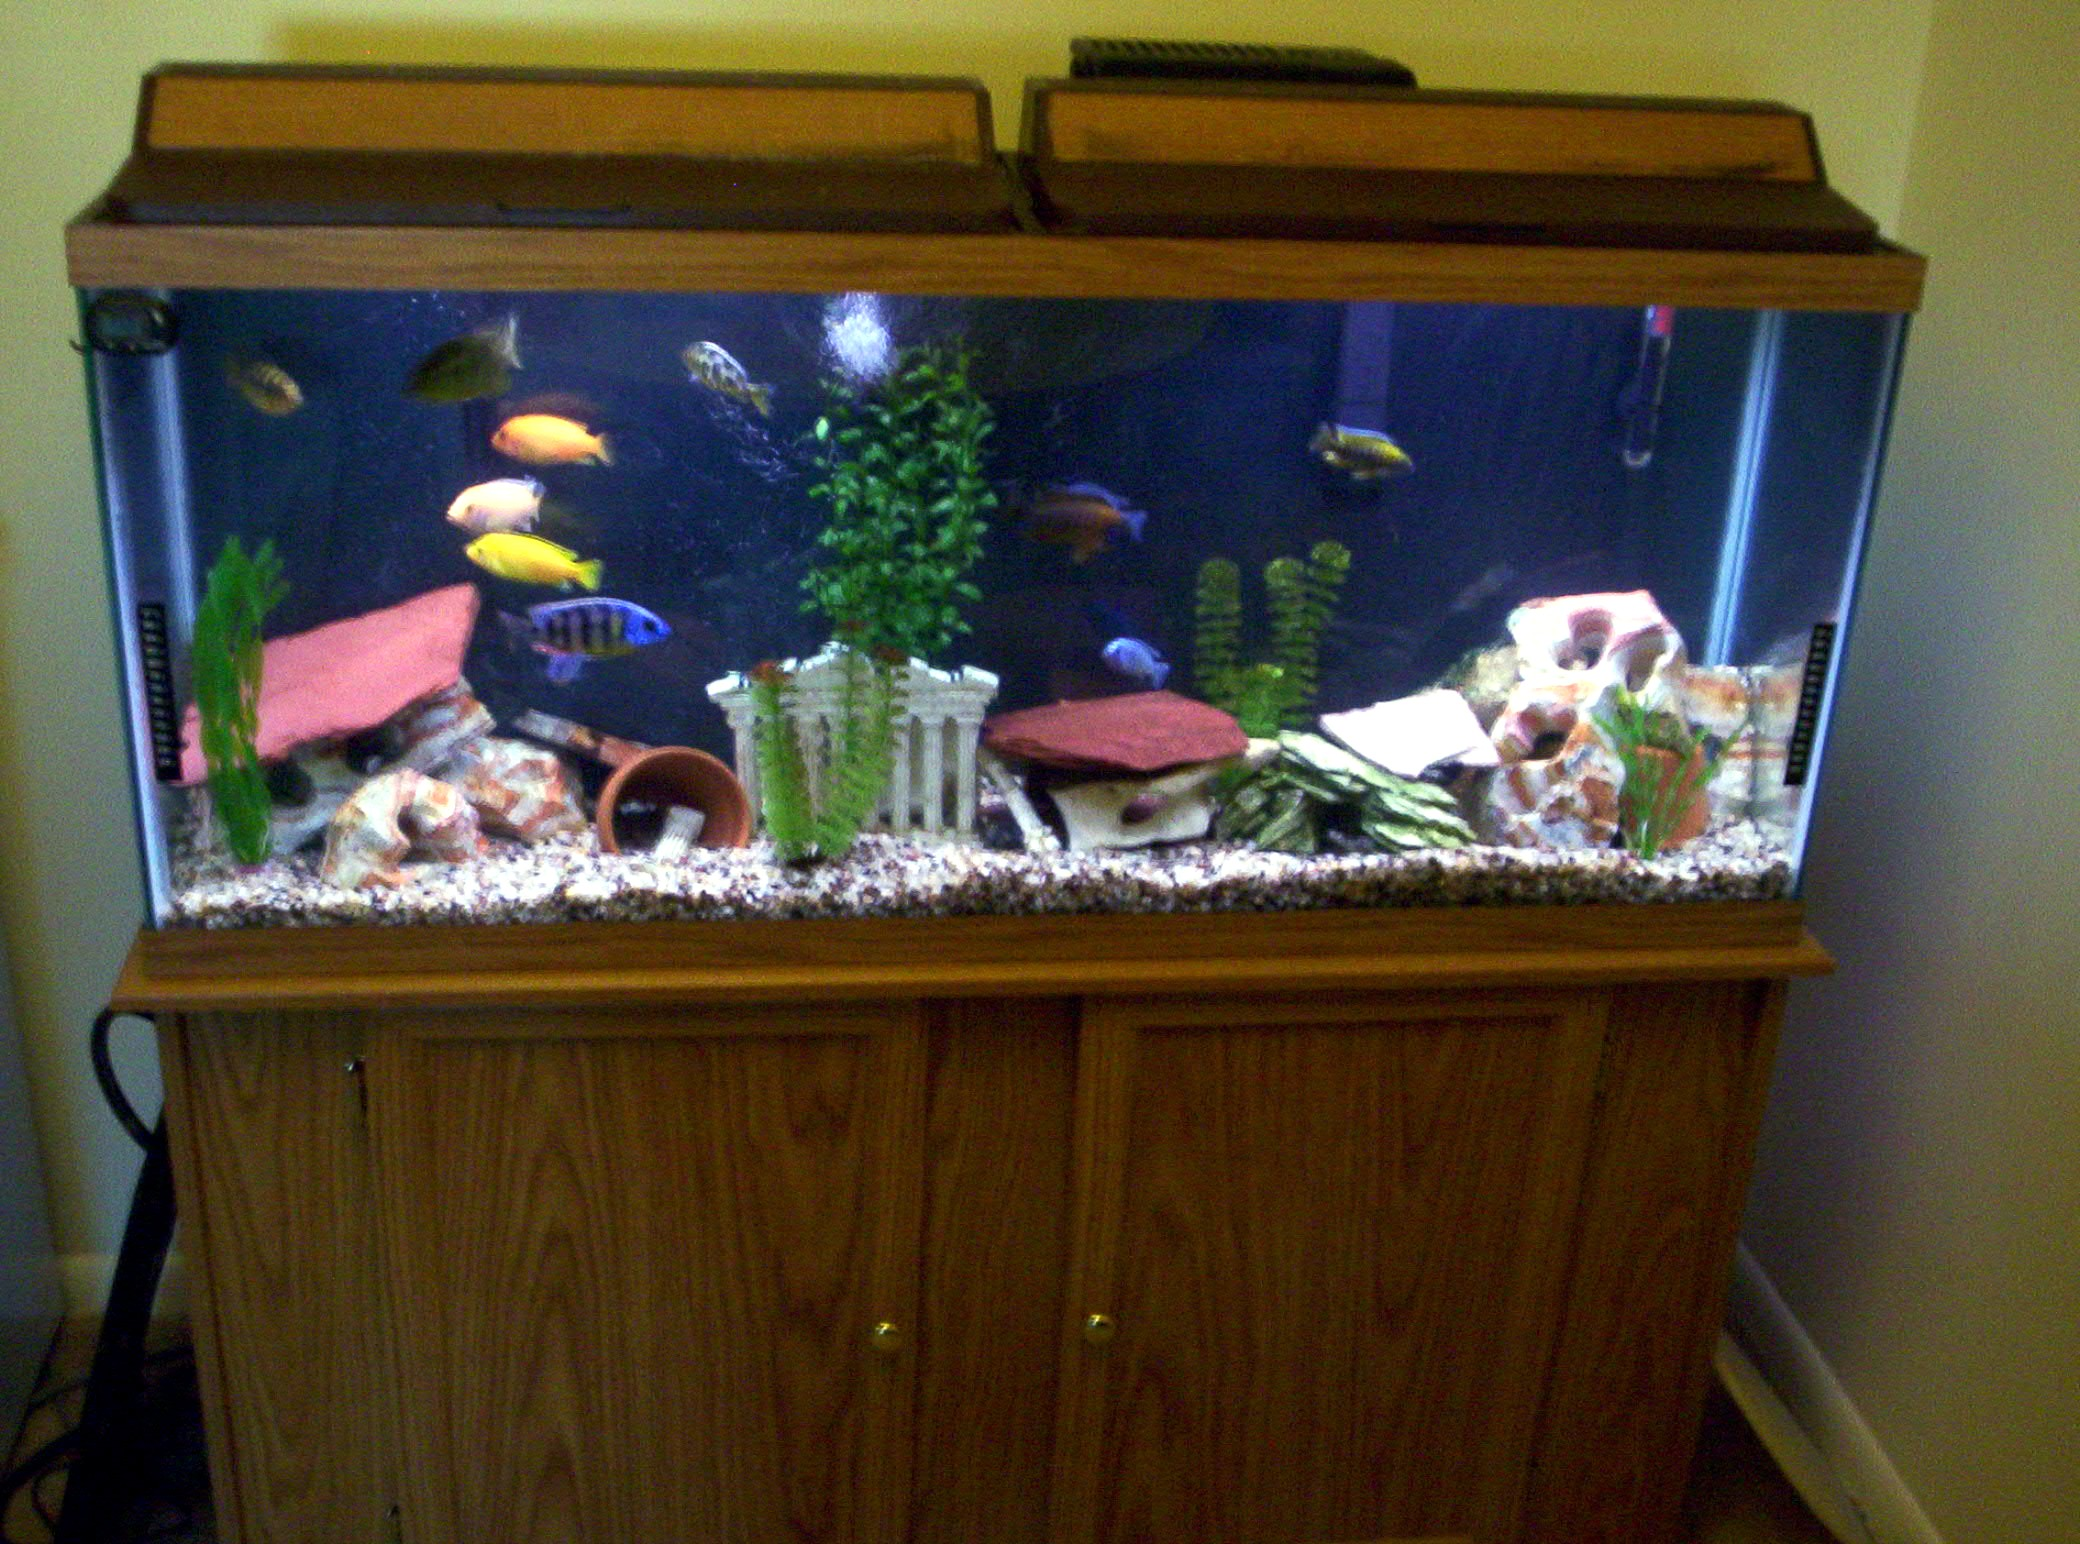 55 gallon fish tank in litres fish tank pauls 55 gallon